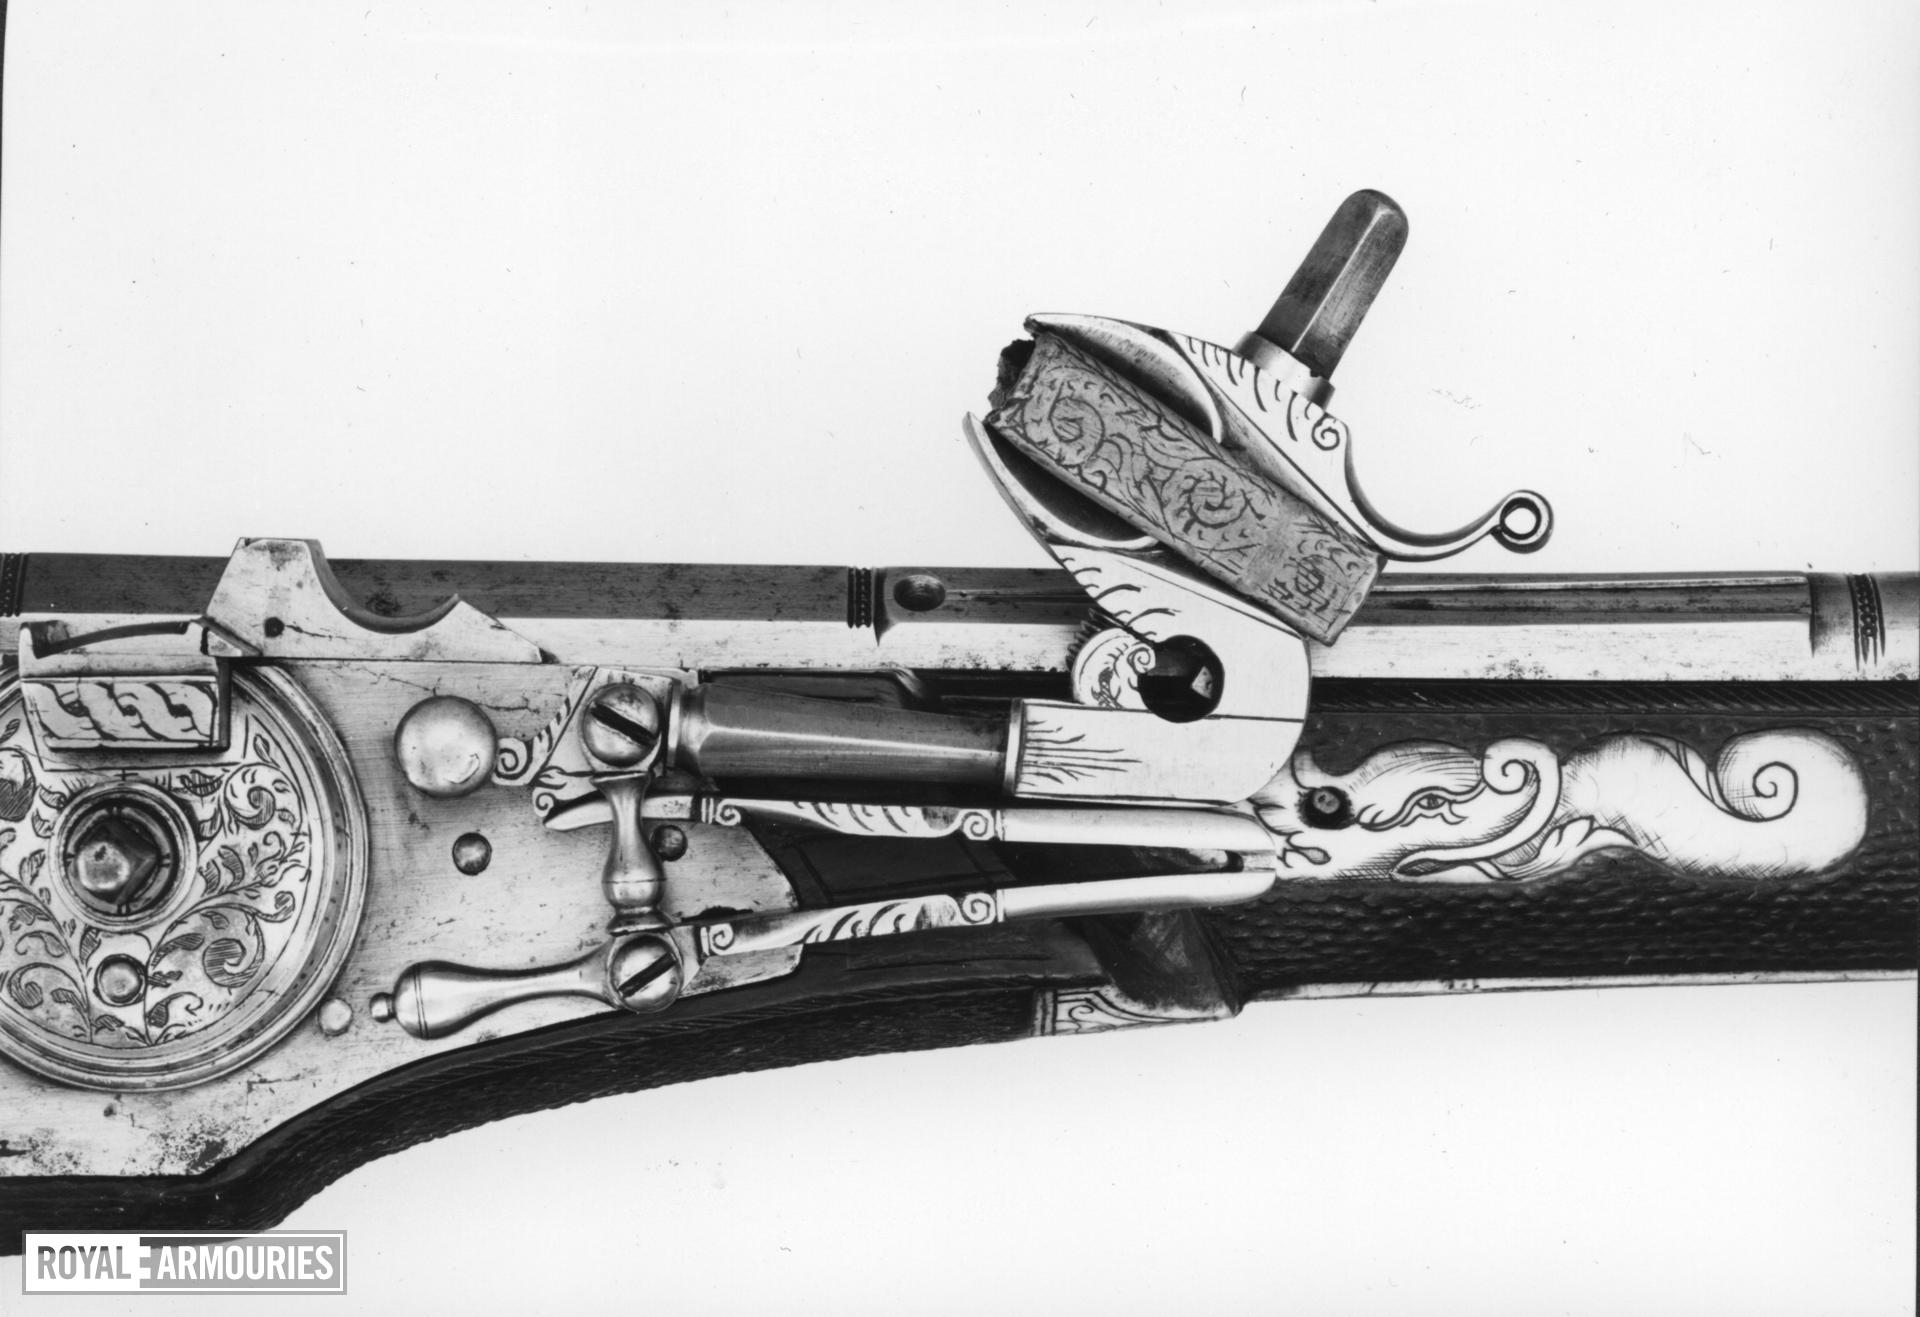 Wheellock muzzle loader holster pistol - By Zacharias Herold For the guard of the Elector Christian II of Saxony One of a pair; see XII.1252